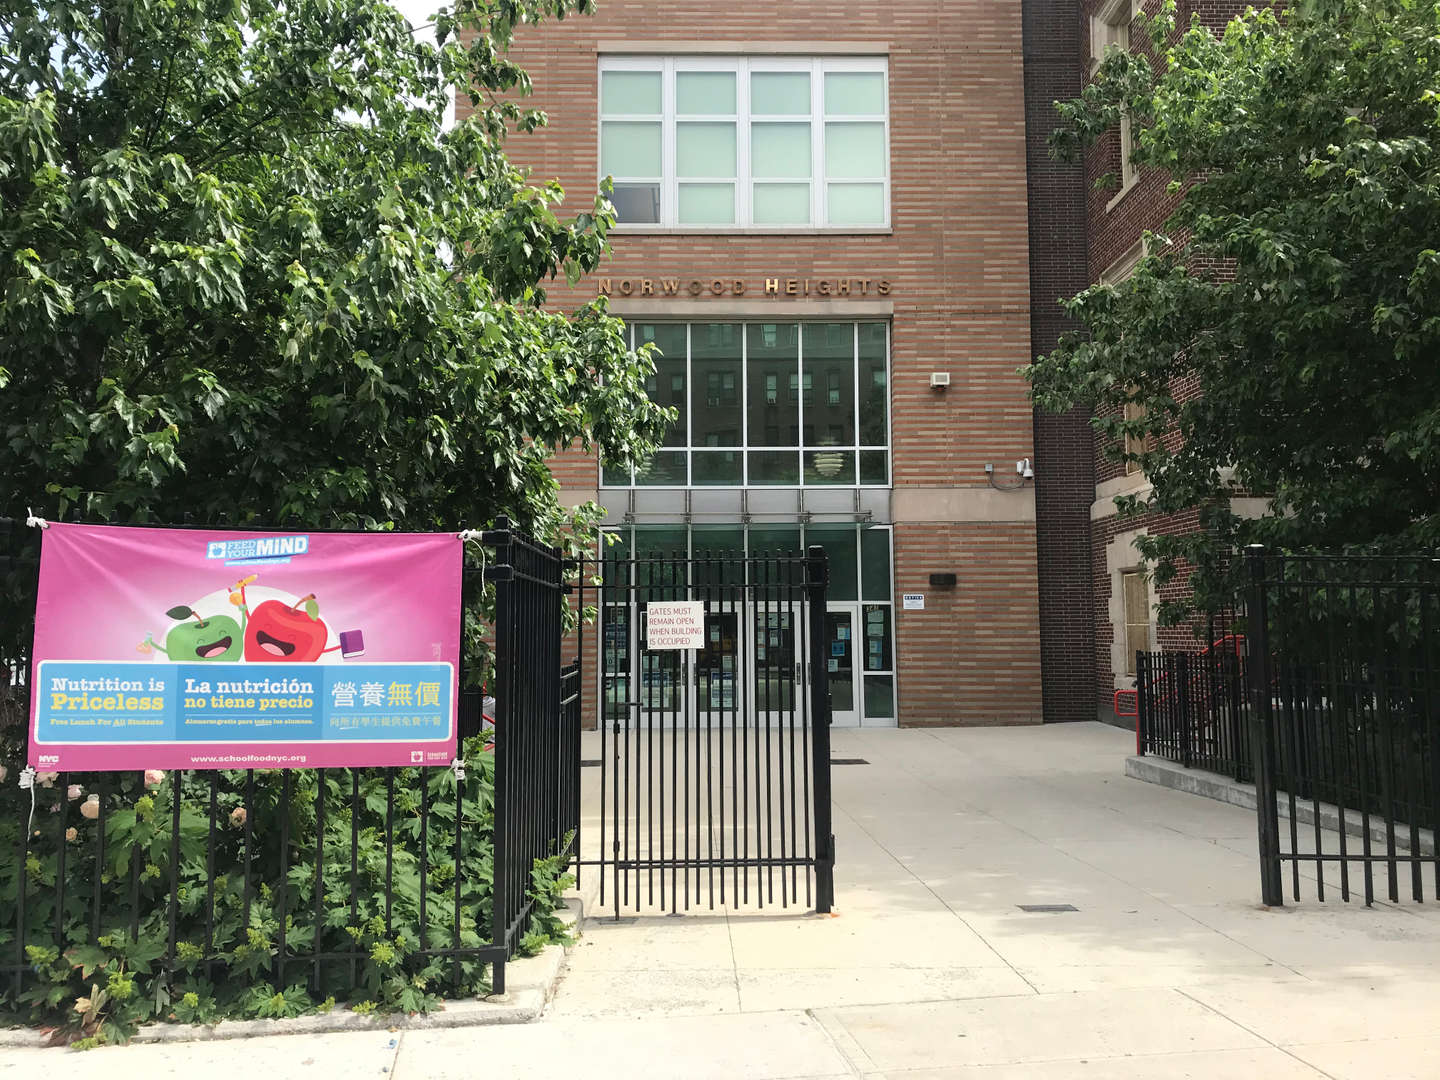 PS 56 entrance way from 207th street nearing the gate.